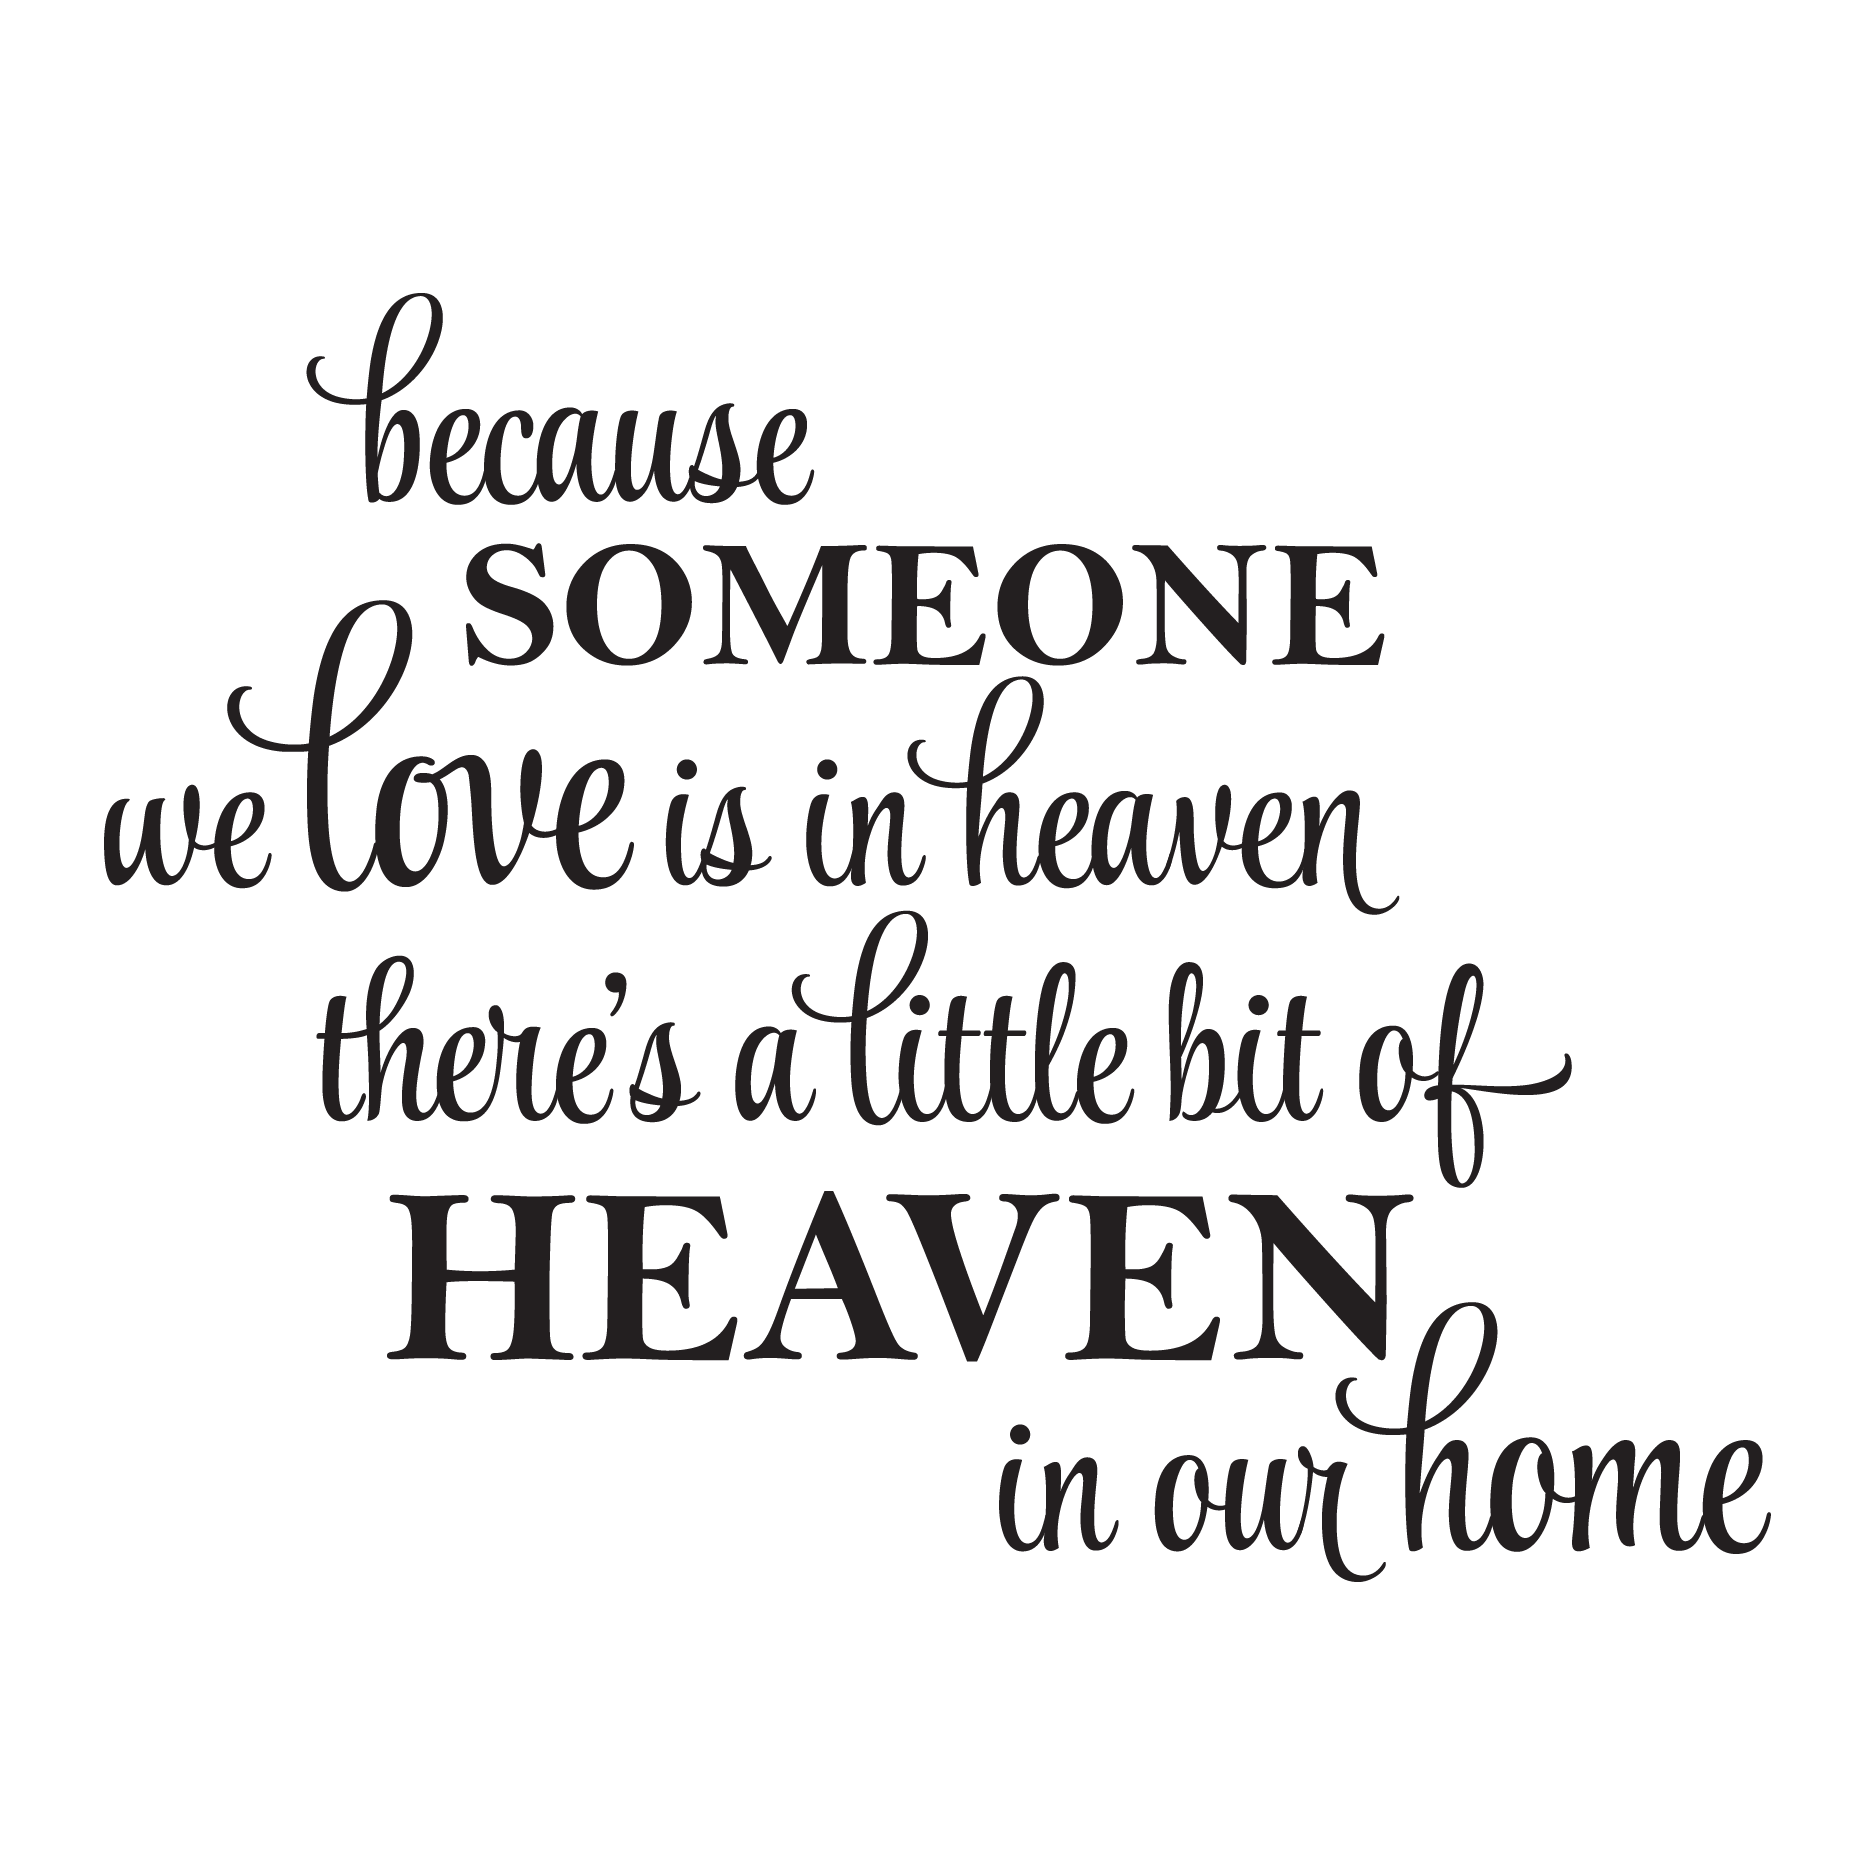 Because Someone We Love Is In Heaven There s A Little Bit Heaven In Our Home